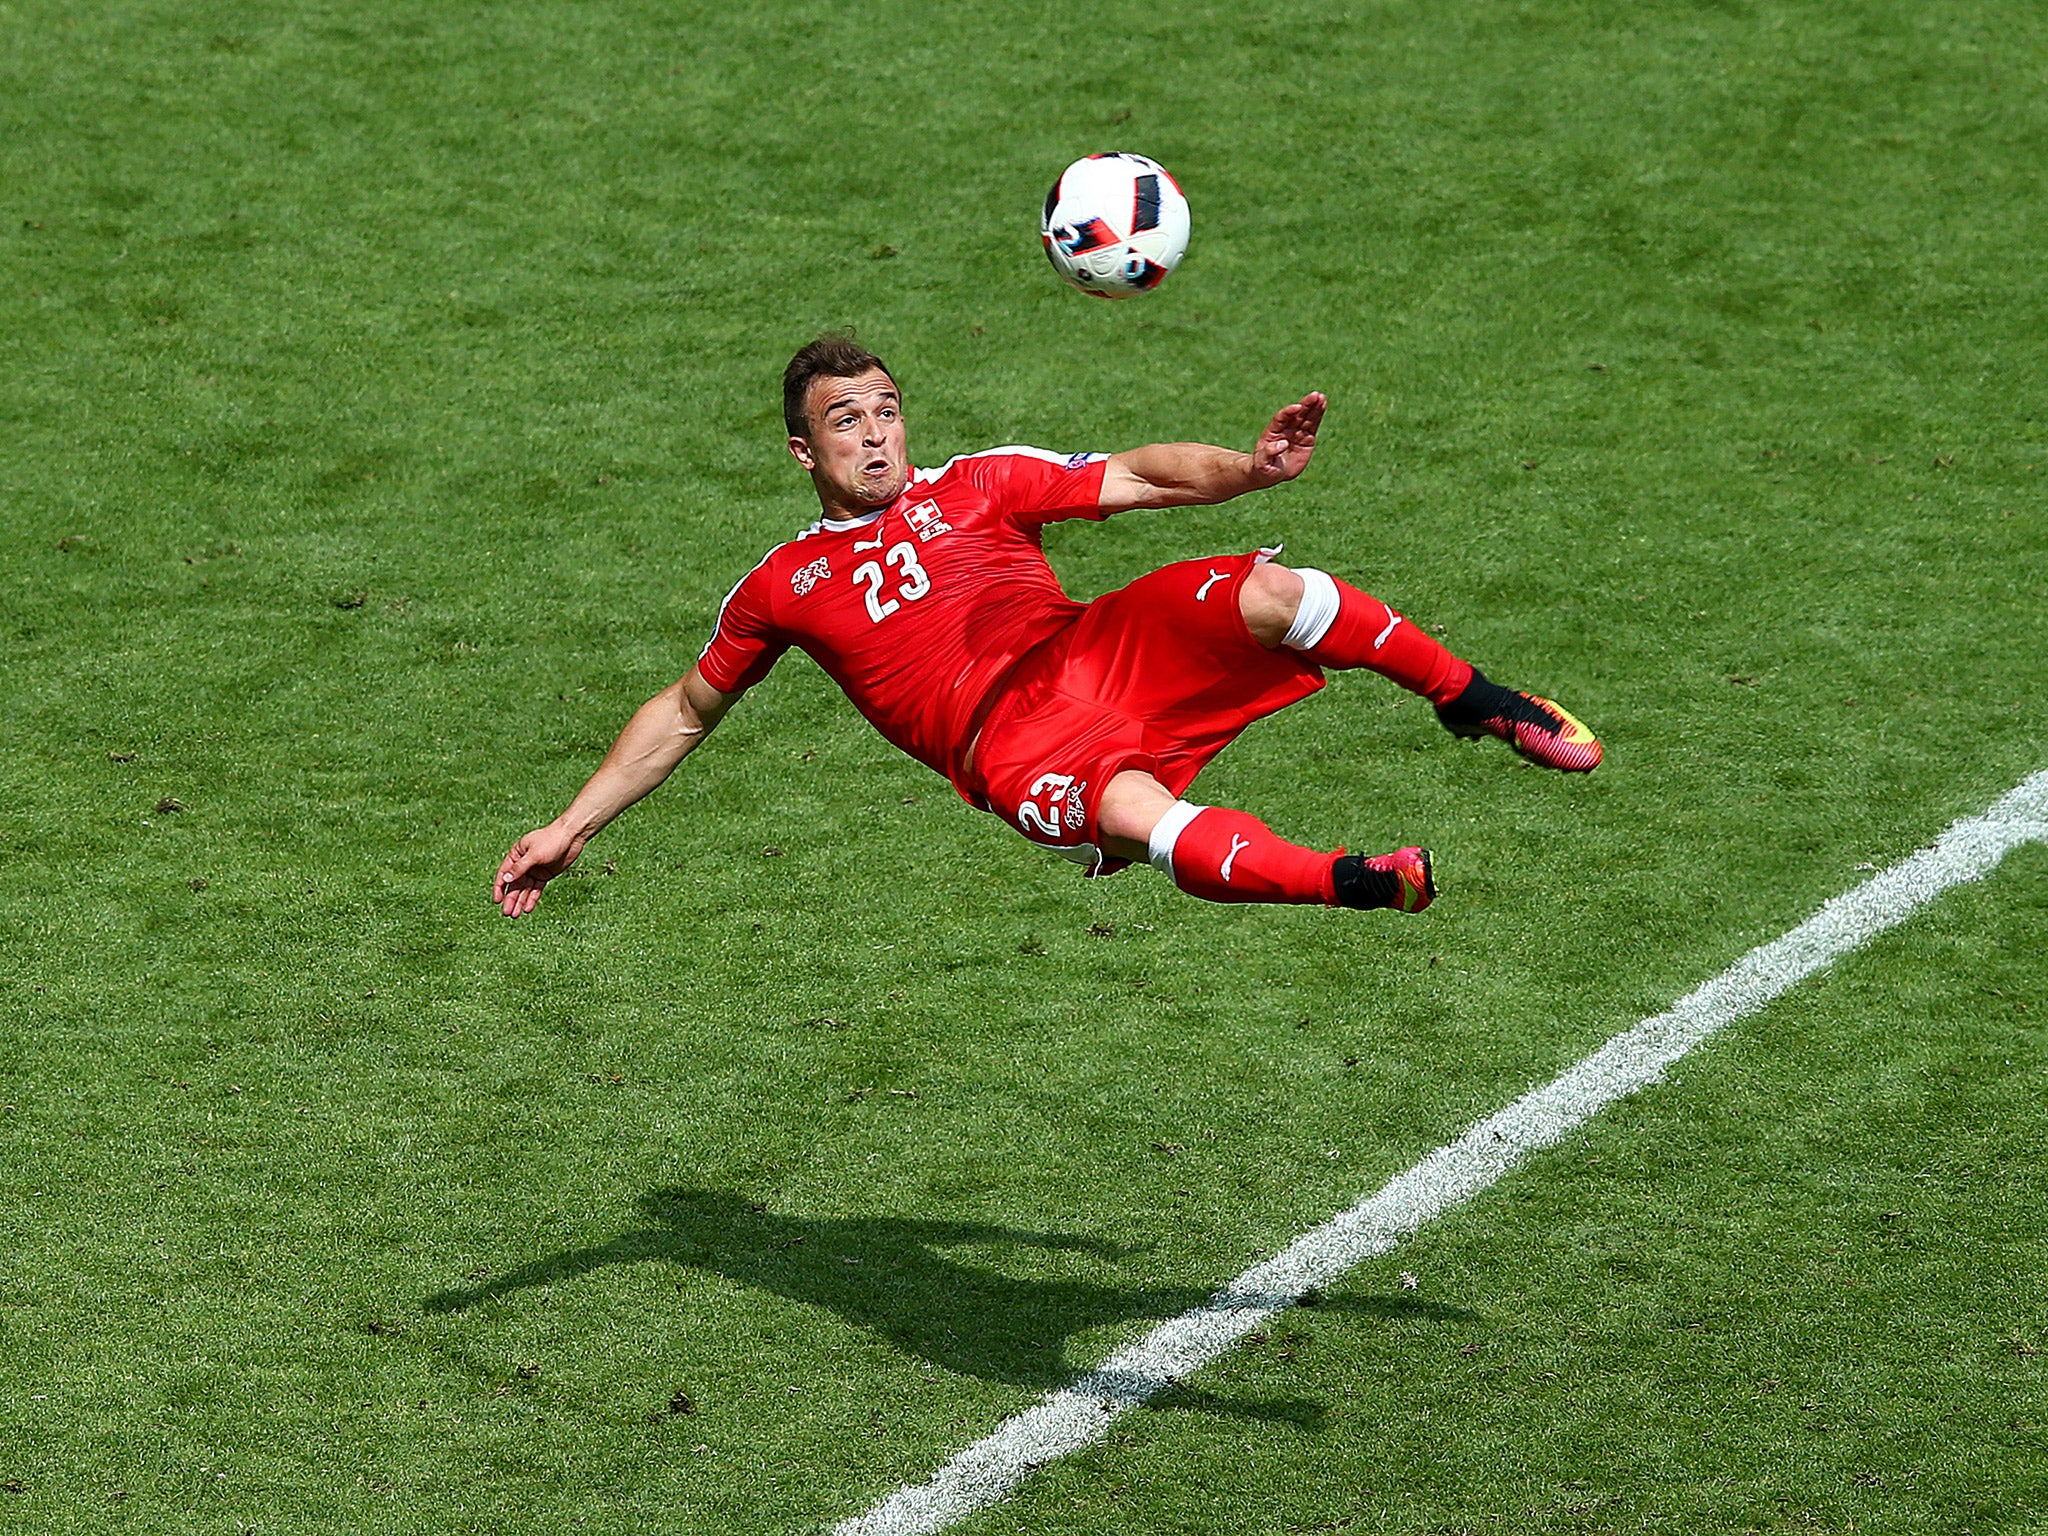 Xherdan Shaqiri just scored the goal of Euro 2016